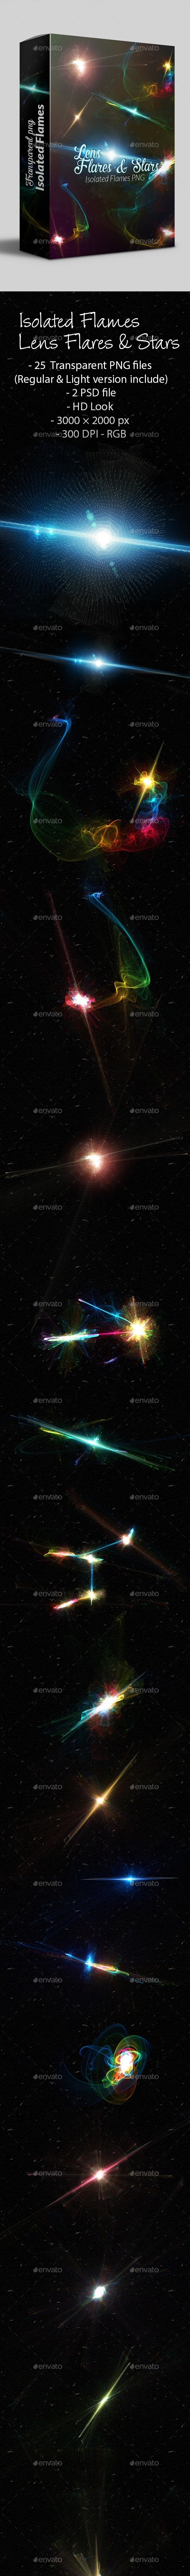 Lens Flares & Stars - Miscellaneous Backgrounds